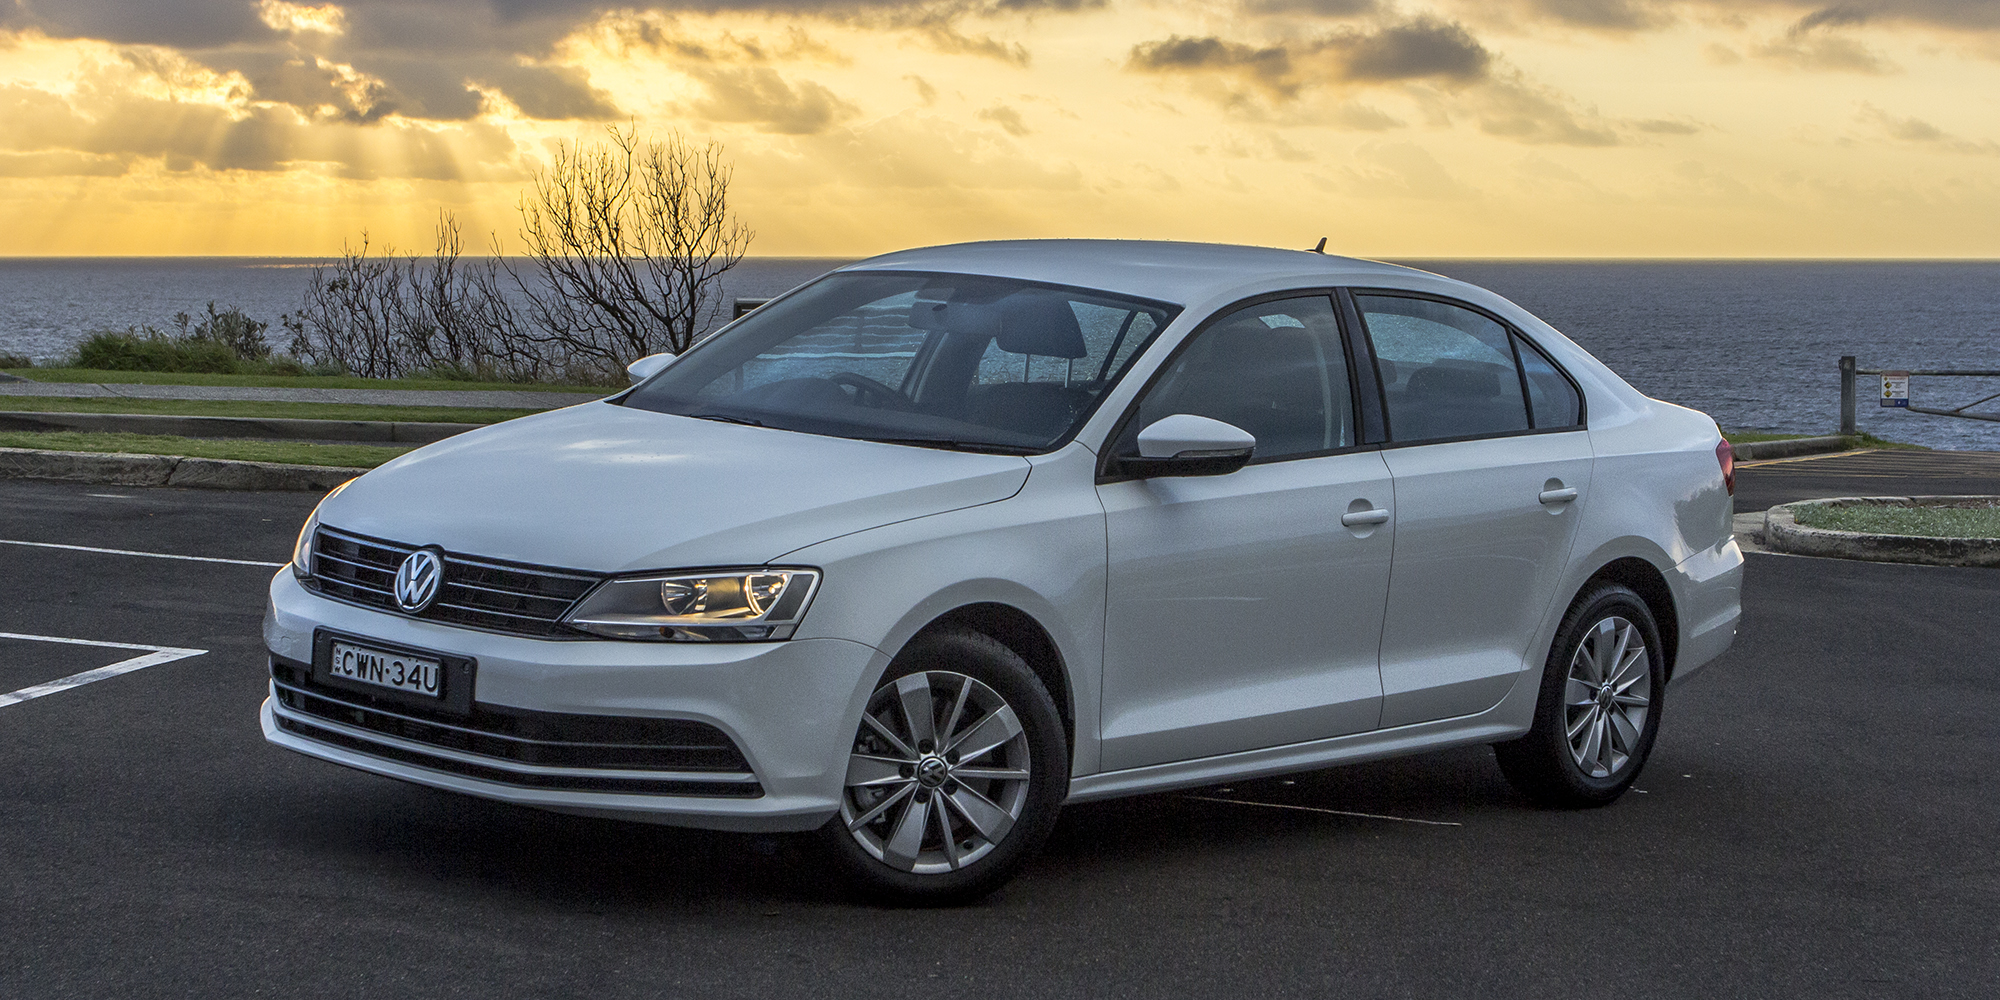 2015 volkswagen jetta review caradvice. Black Bedroom Furniture Sets. Home Design Ideas